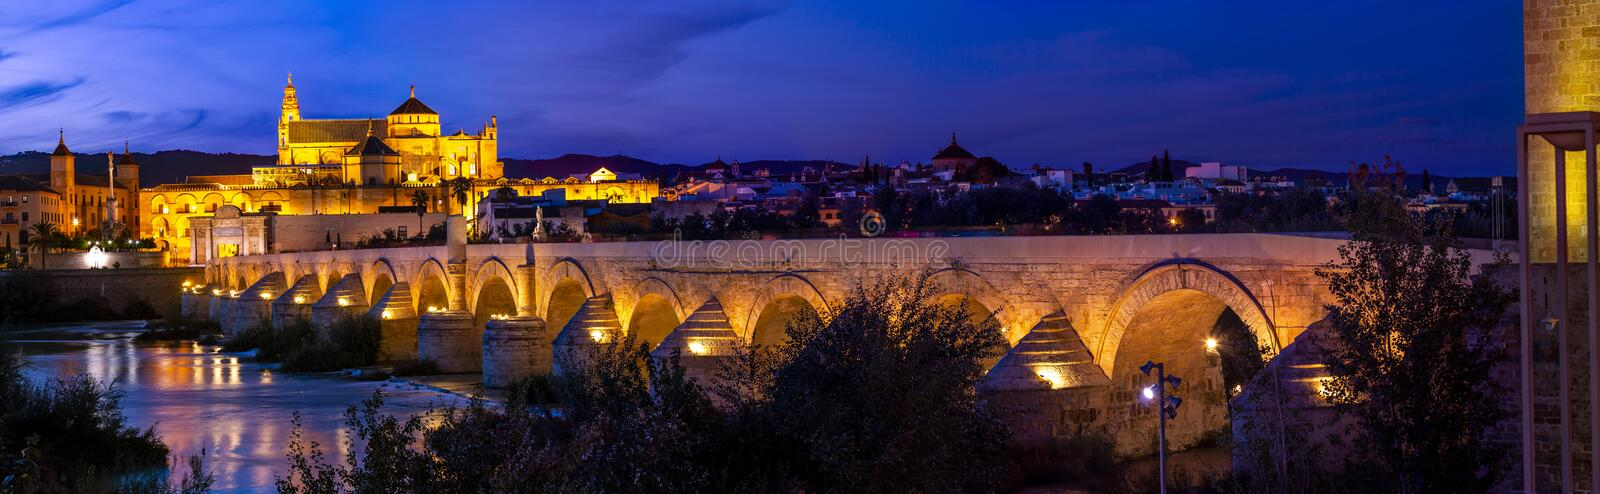 Amazing panoramic view of Roman bridge and Mezquita of Cordoba glowing in night royalty free stock images